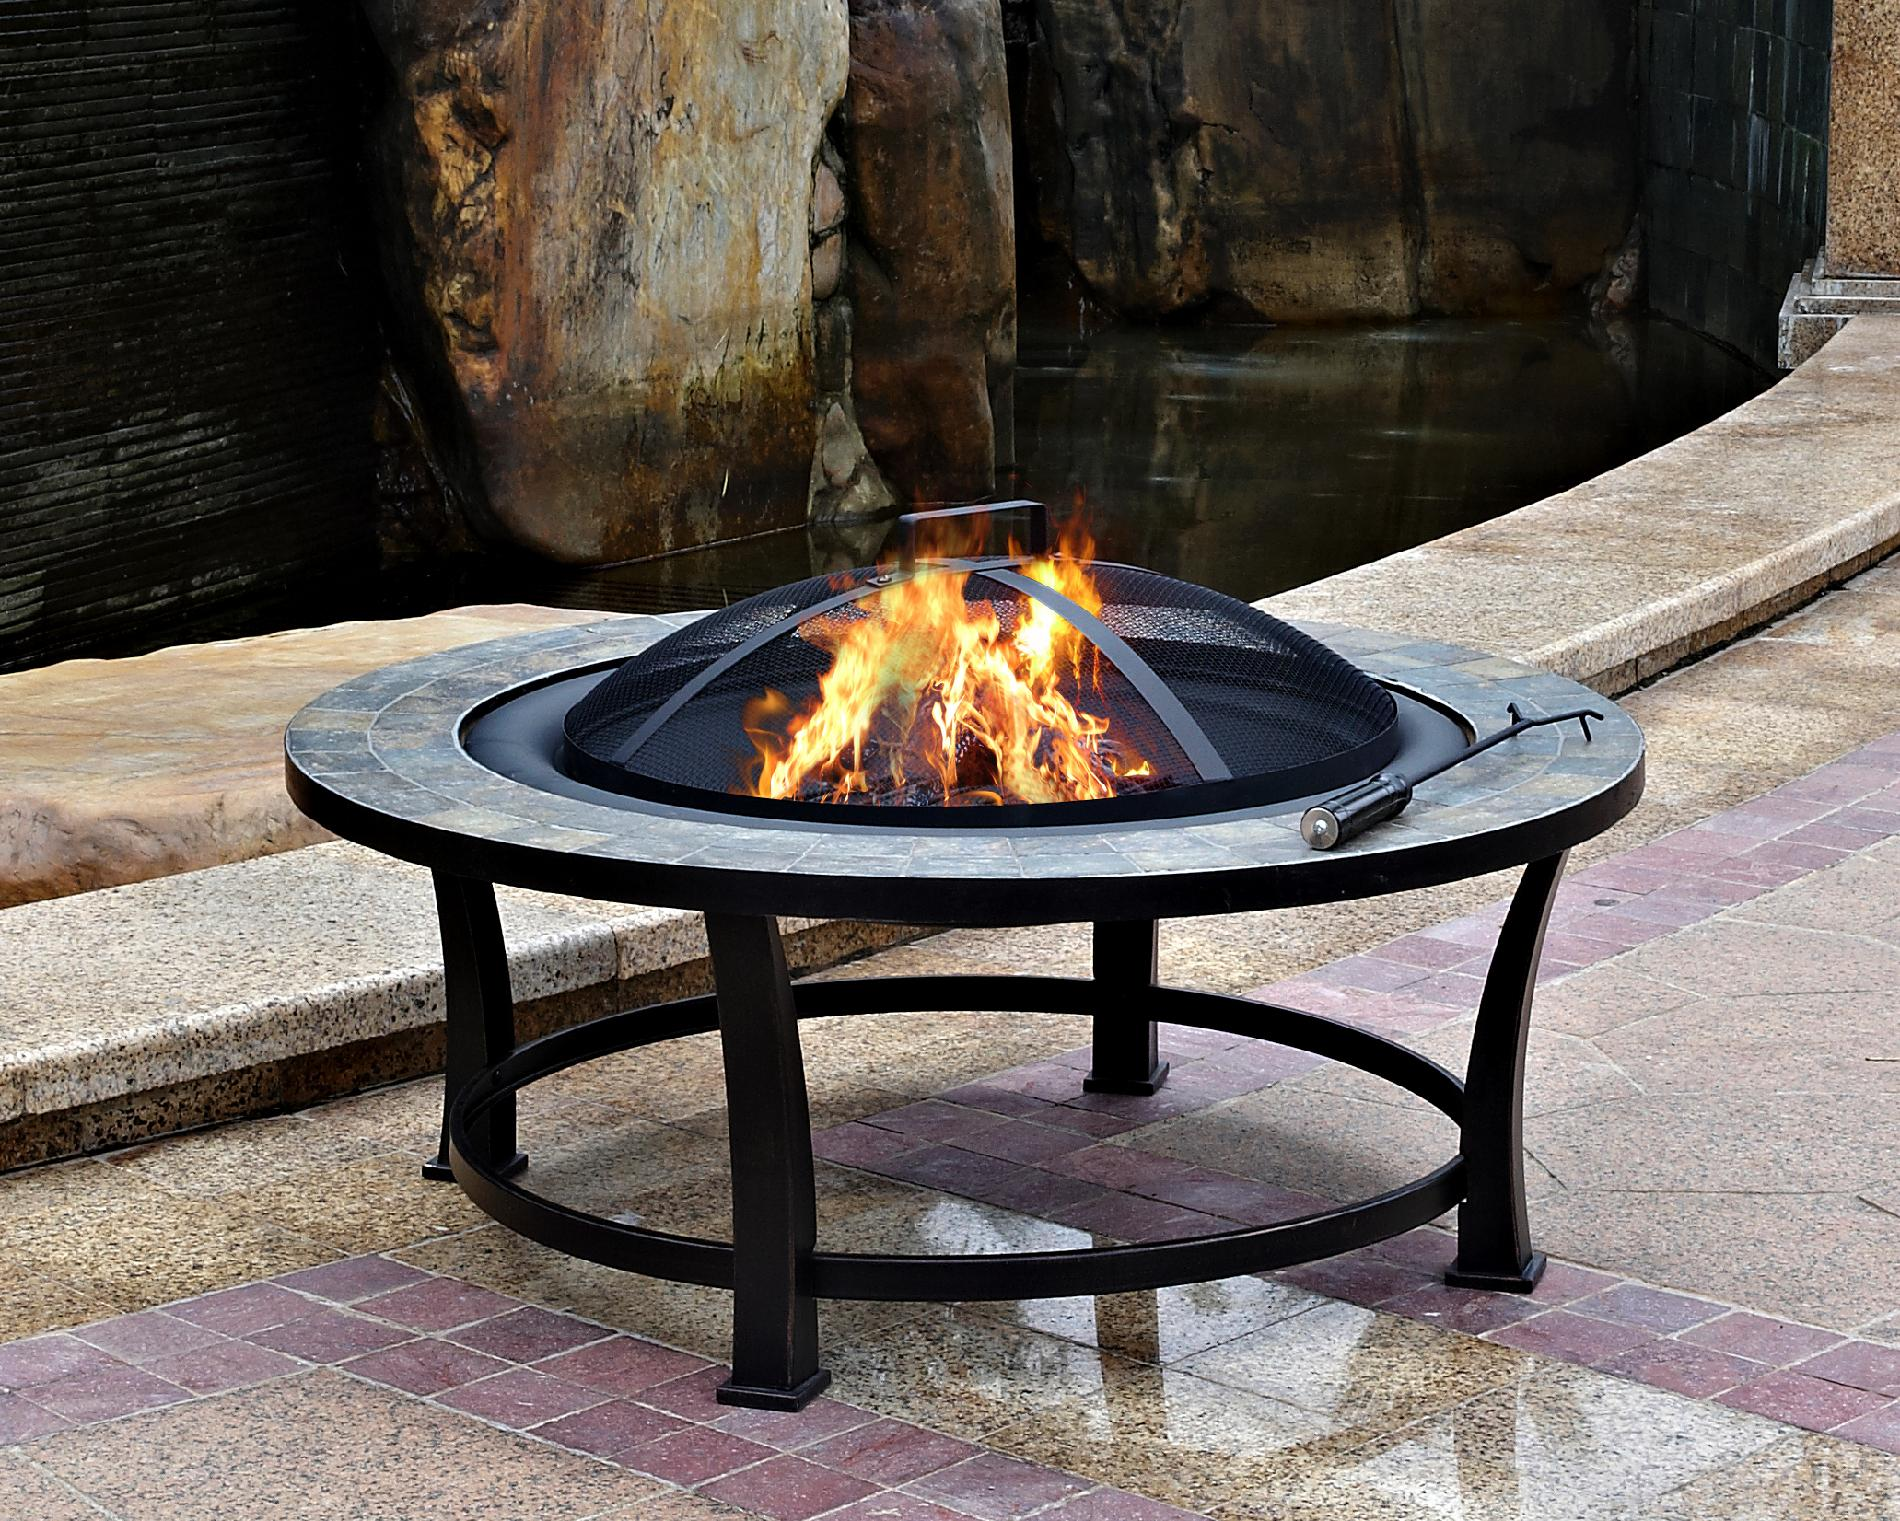 "Garden Oasis 40"" Round Slate Top Fire Pit Table PartNumber: 028W006134267001P KsnValue: 028W006134267001 MfgPartNumber: FTB-51216"